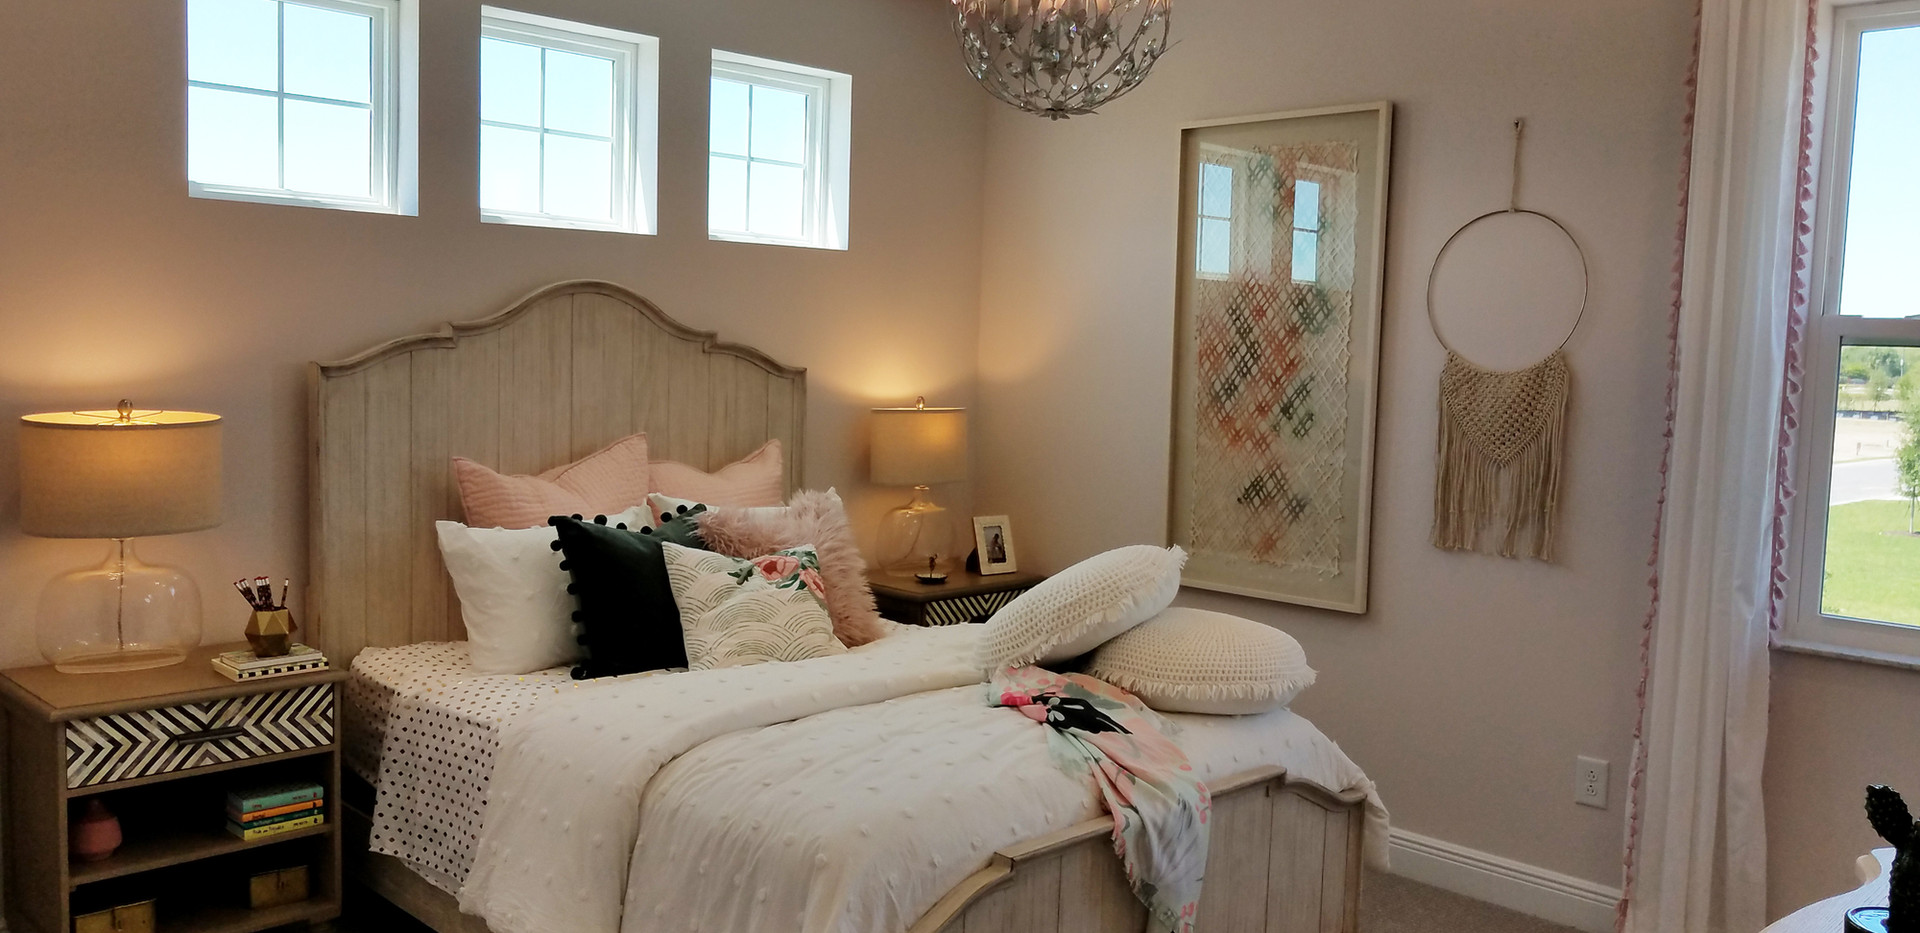 Worthington model home bedroom 2